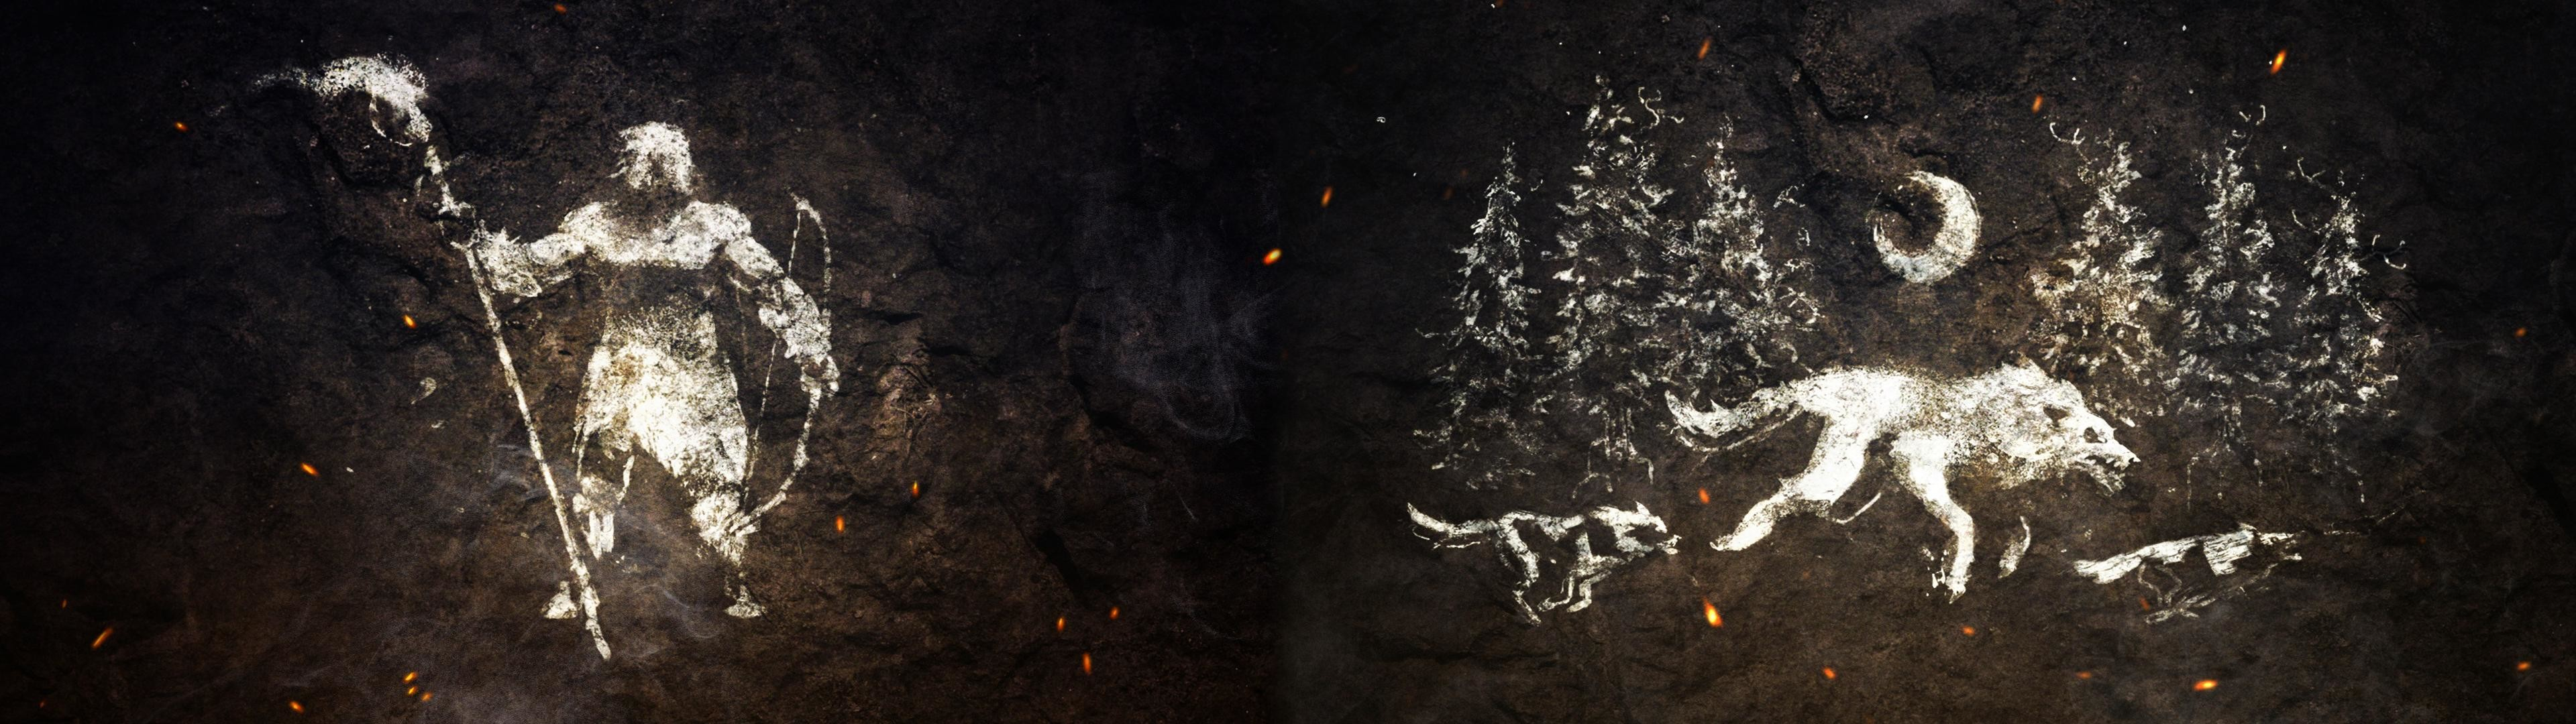 Made-a-FarCry-Primal-Dual-Monitor-x1080-wallpaper-